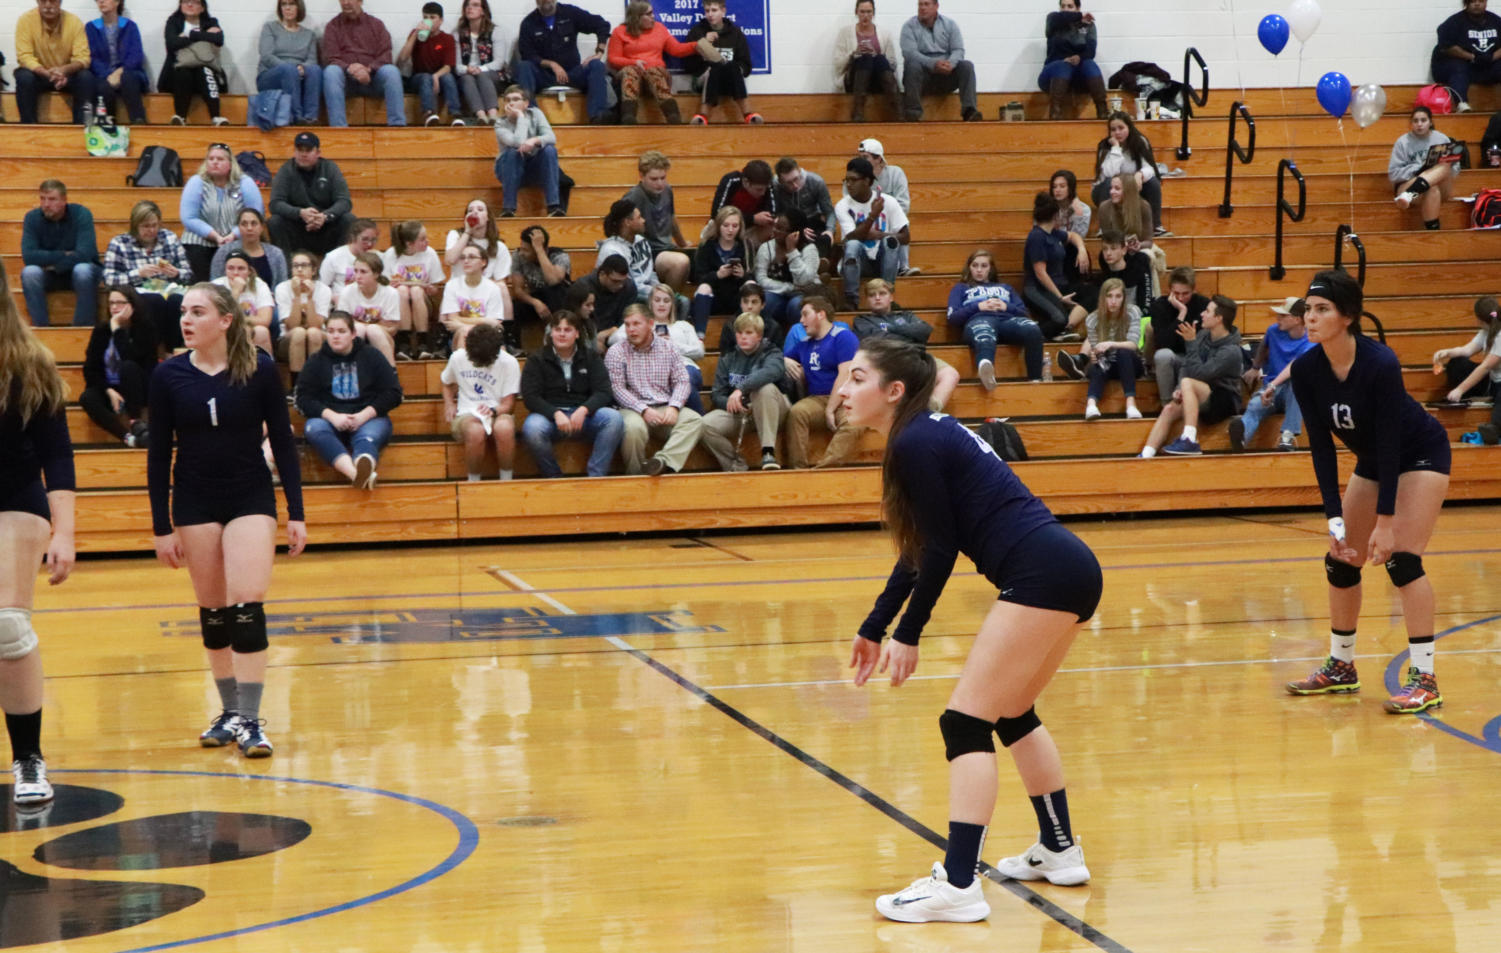 McCollum+watches+for+the+ball+to+come+over+the+net+on+a+Rockbridge+serve.+